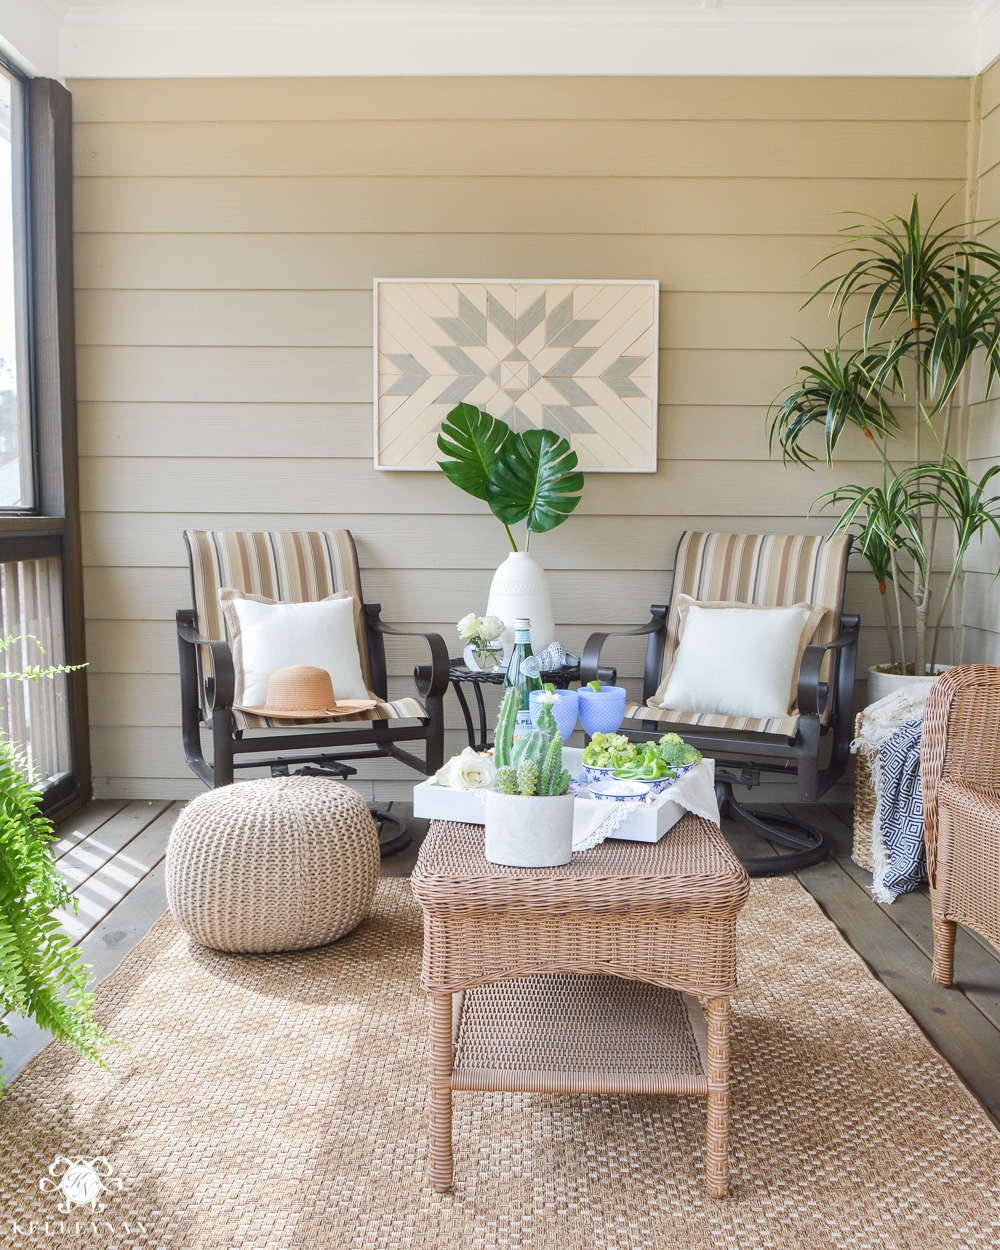 Shades of Summer Home Tour Back Screened In Porch- porch decorating ideas